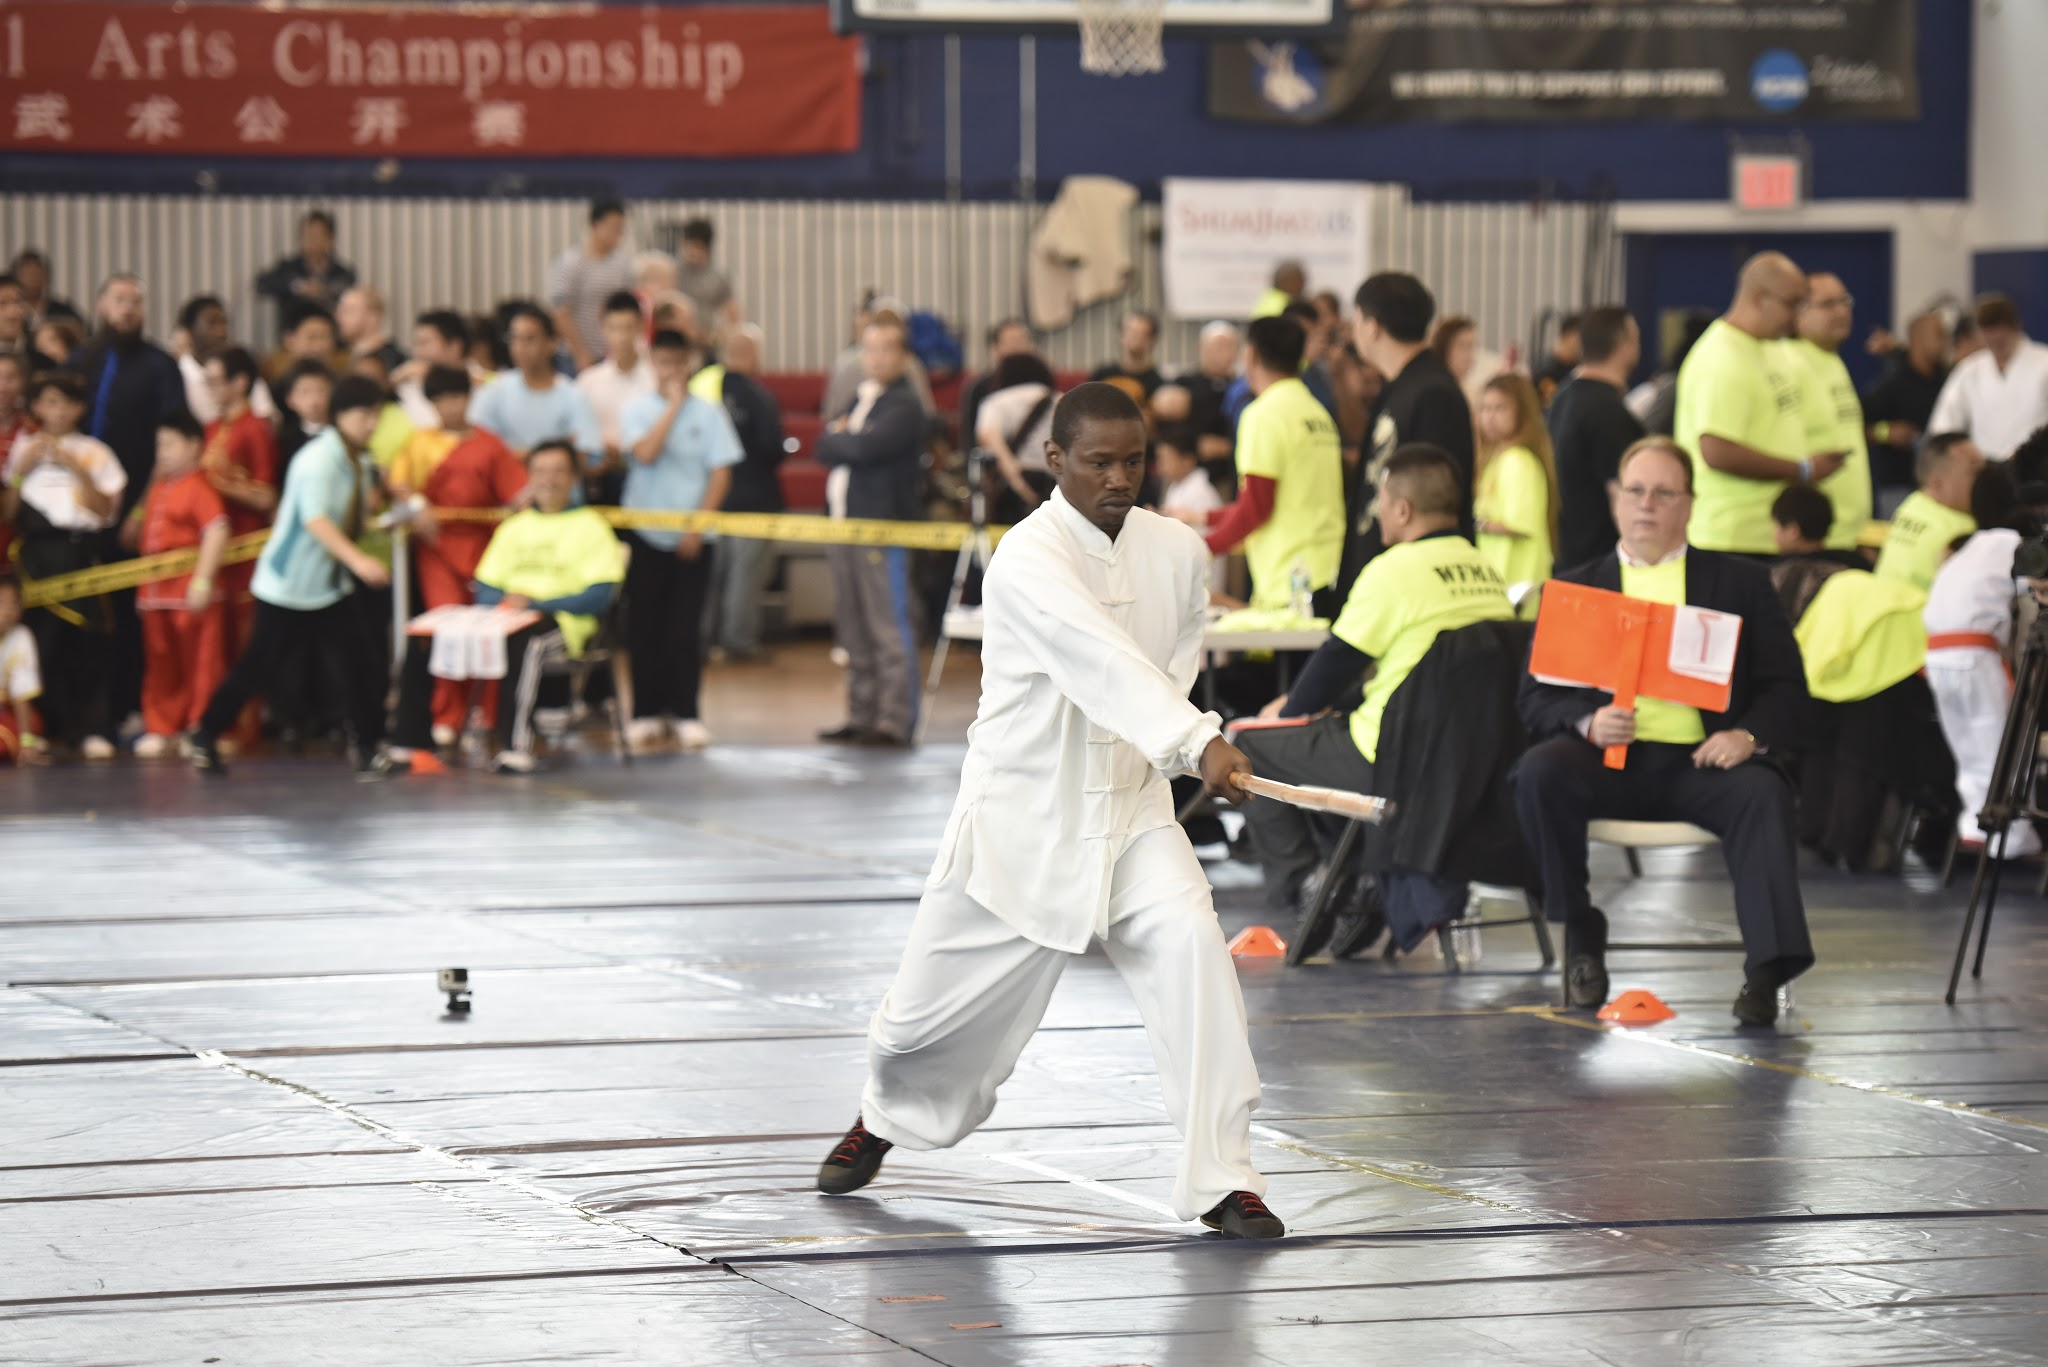 Kung Fu demonstration at the US Open Martial Arts Championship, organized by the WFMAF.